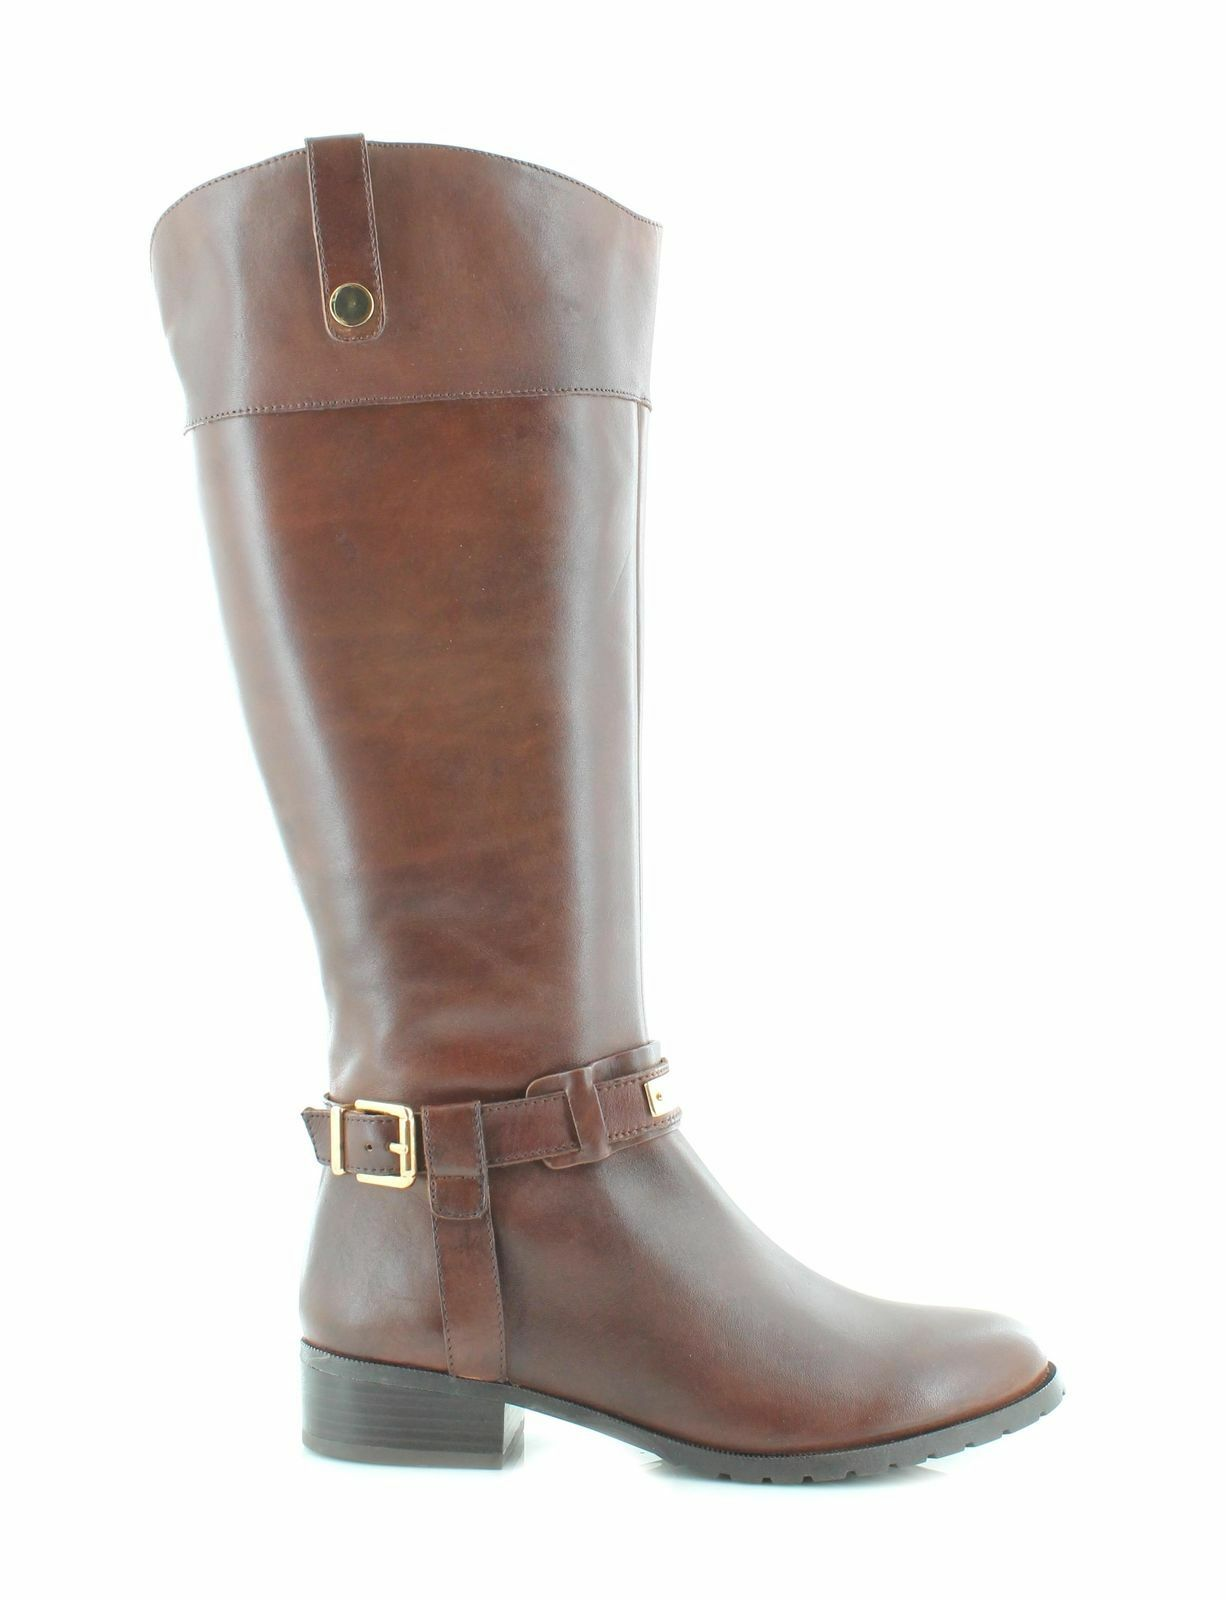 INC Fabbaa Women's Boots Cappuccino Wide Calf Size 5M or or or 5.5M MRSP  190 a79c33